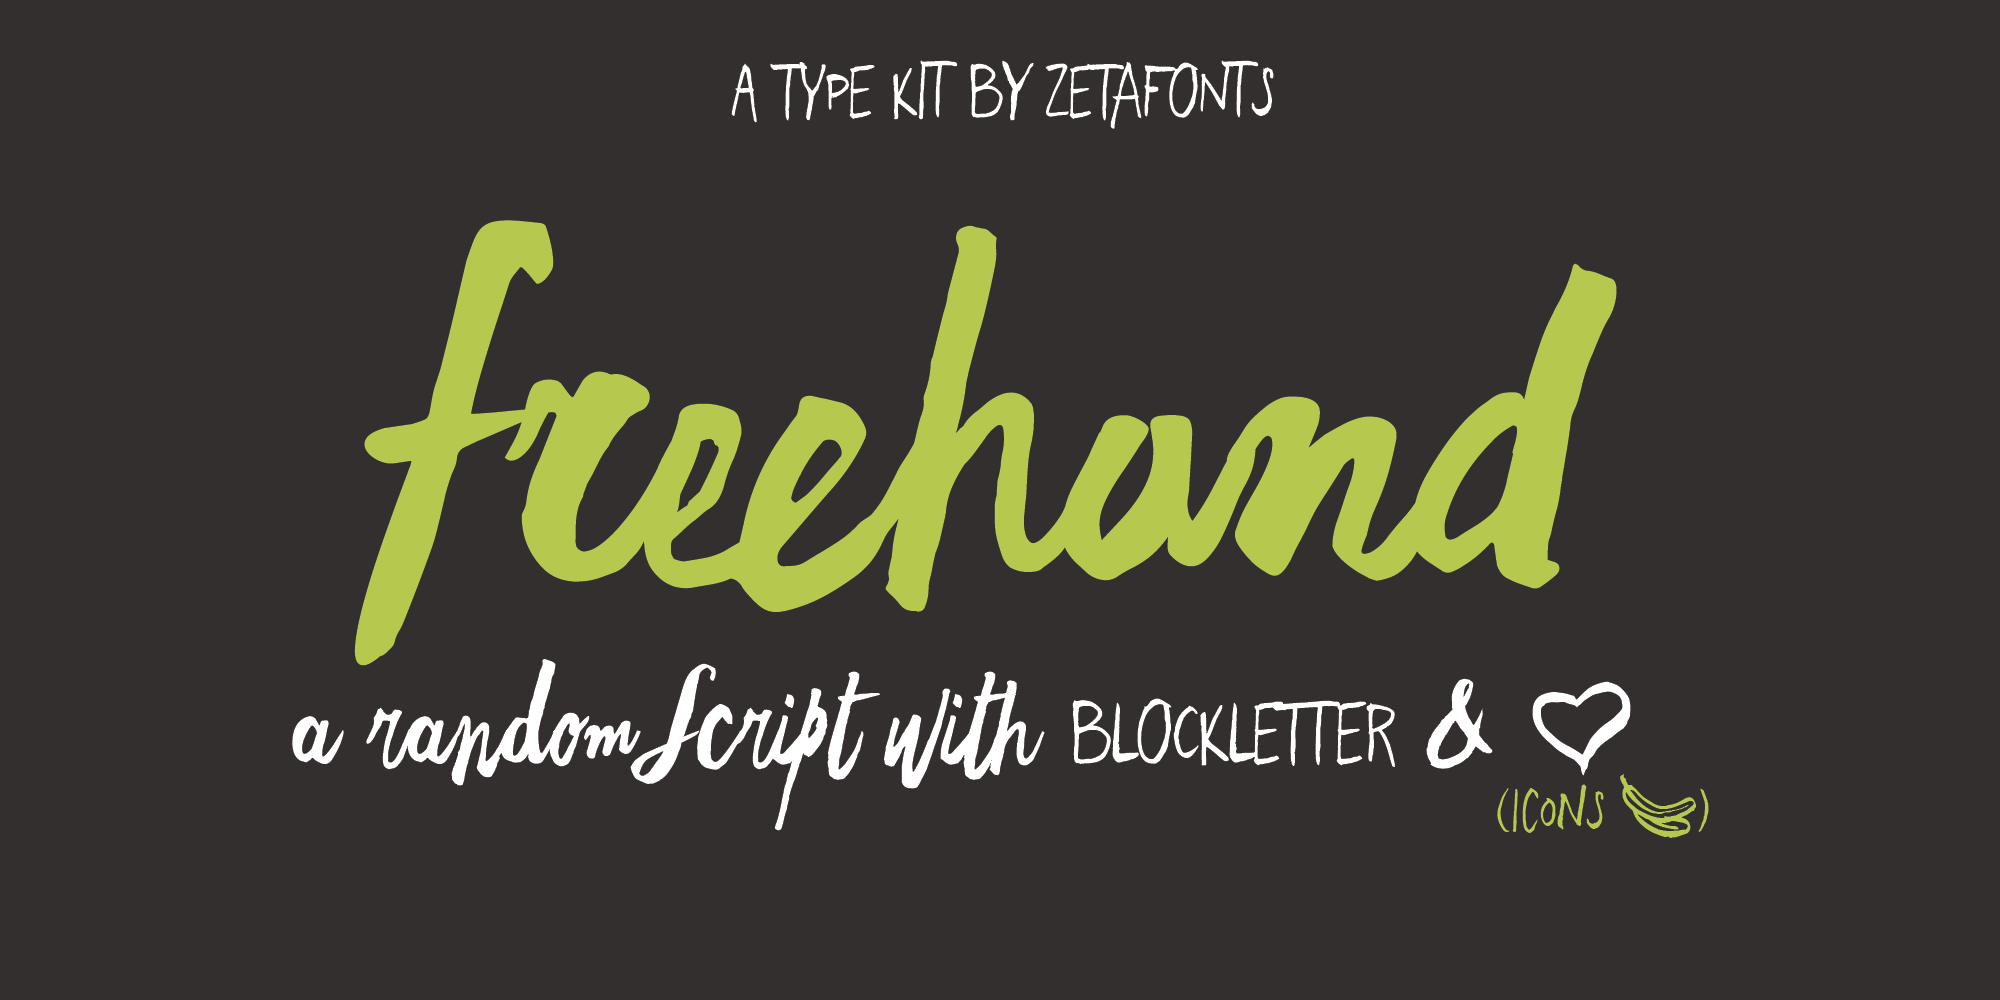 Freehand Typeface By Zetafonts